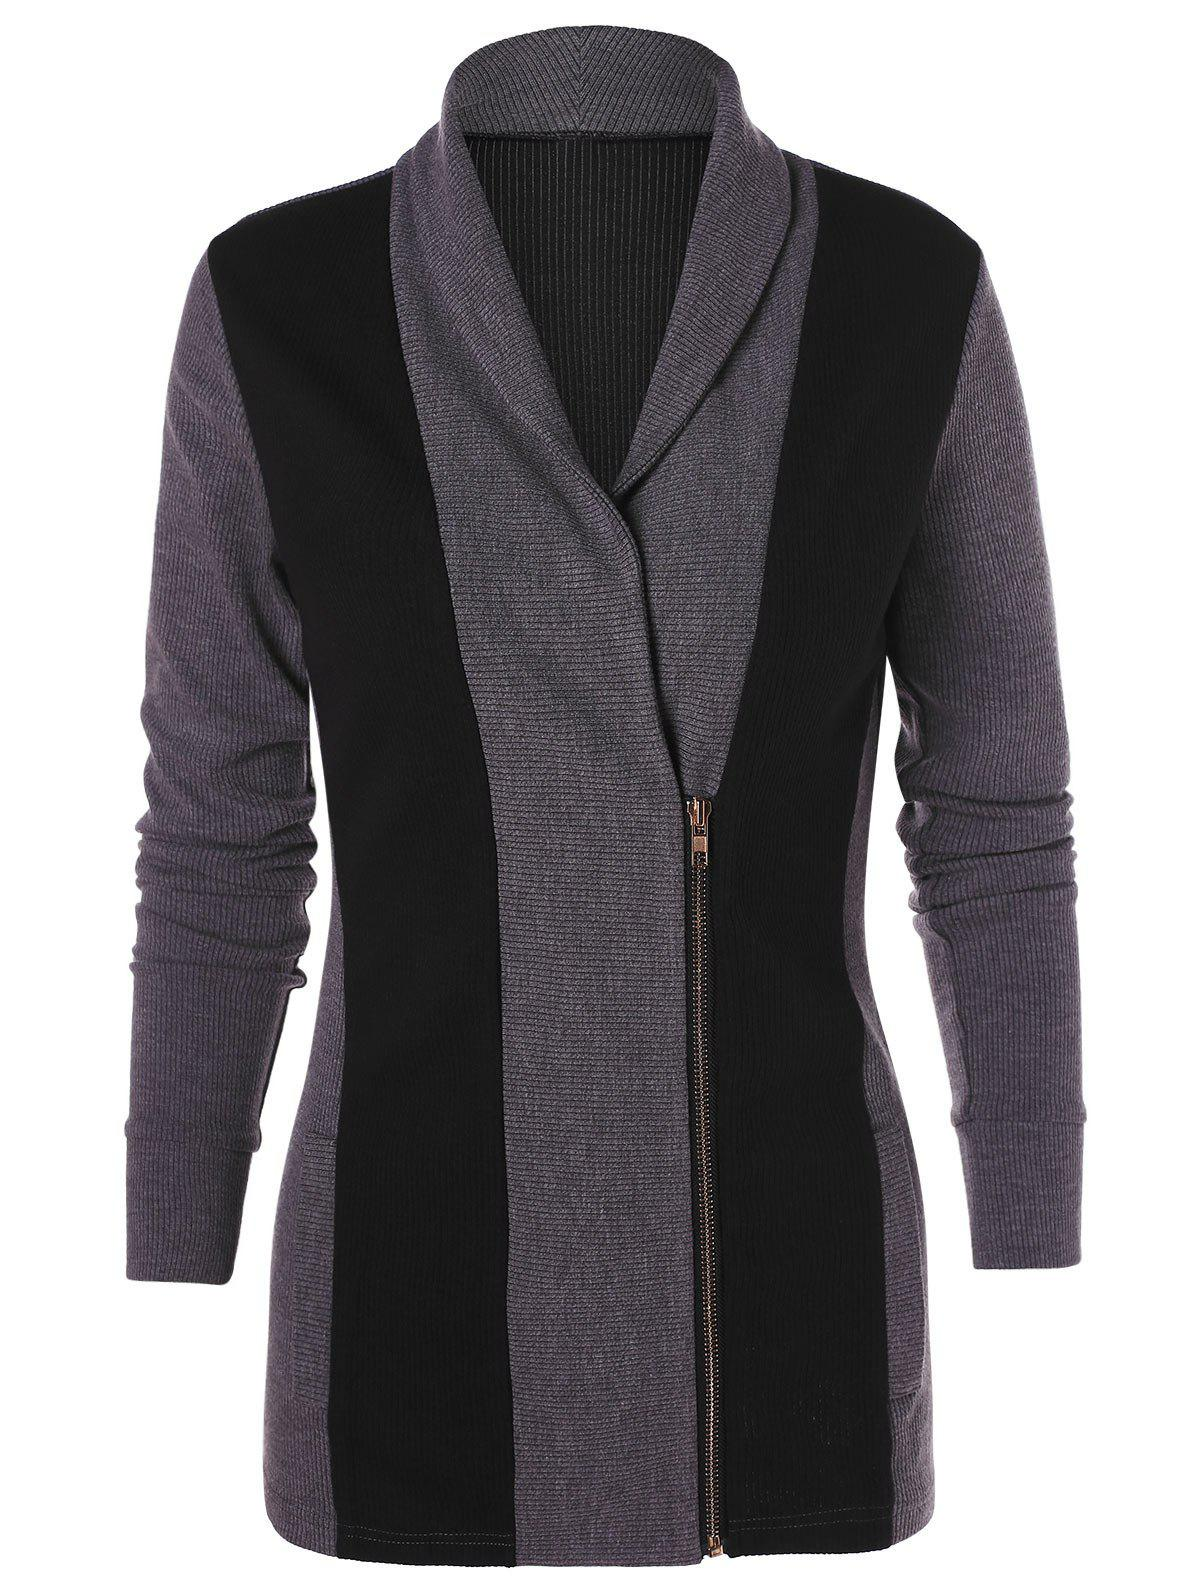 Latest Two Tone Zip Up Knit Cardigan